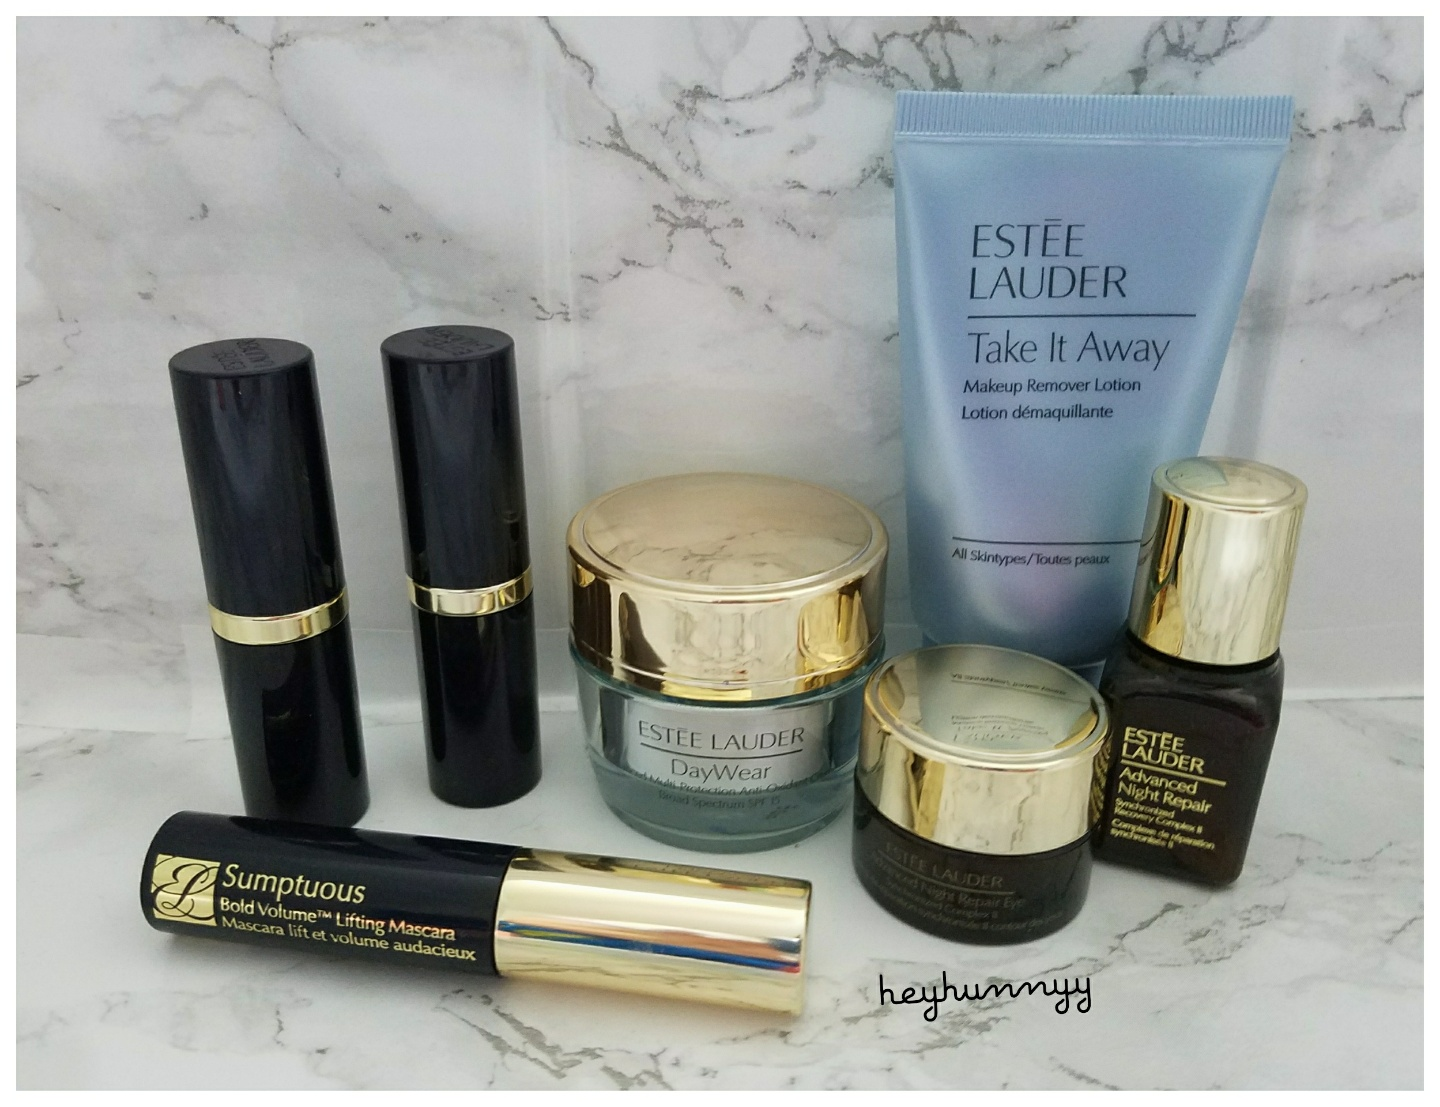 ::HUNNYYHOLIDAYS:: Day 11- Recent Beauty Buys! LANCOME